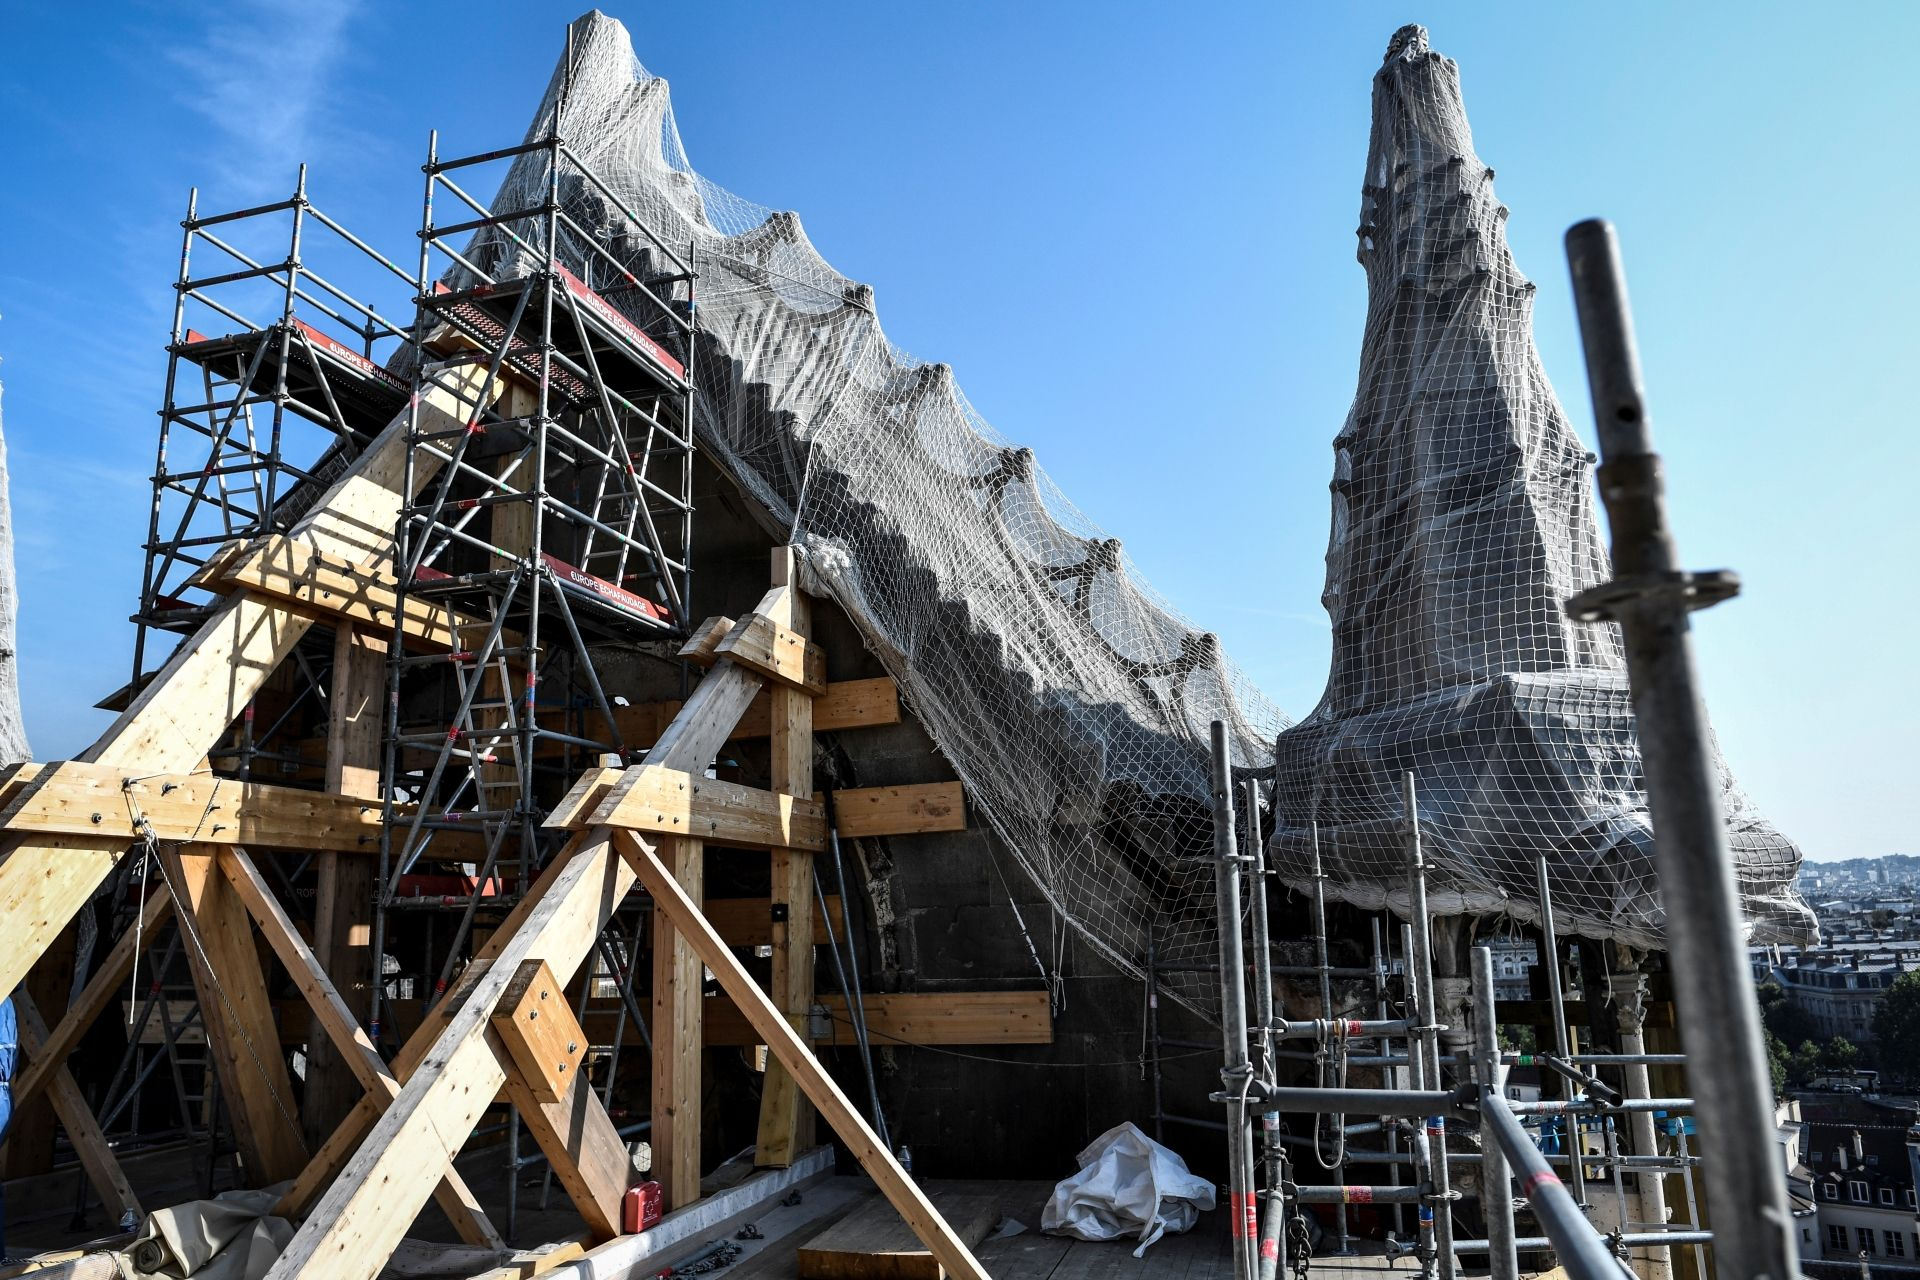 Six months after the April 15 fire that tore through the roof of the 13th-century Paris cathedral and toppled its spire, the reconstruction process is shaping up to be much more complex than many anticipated.  © STEPHANE DE SAKUTIN / POOL / AFP